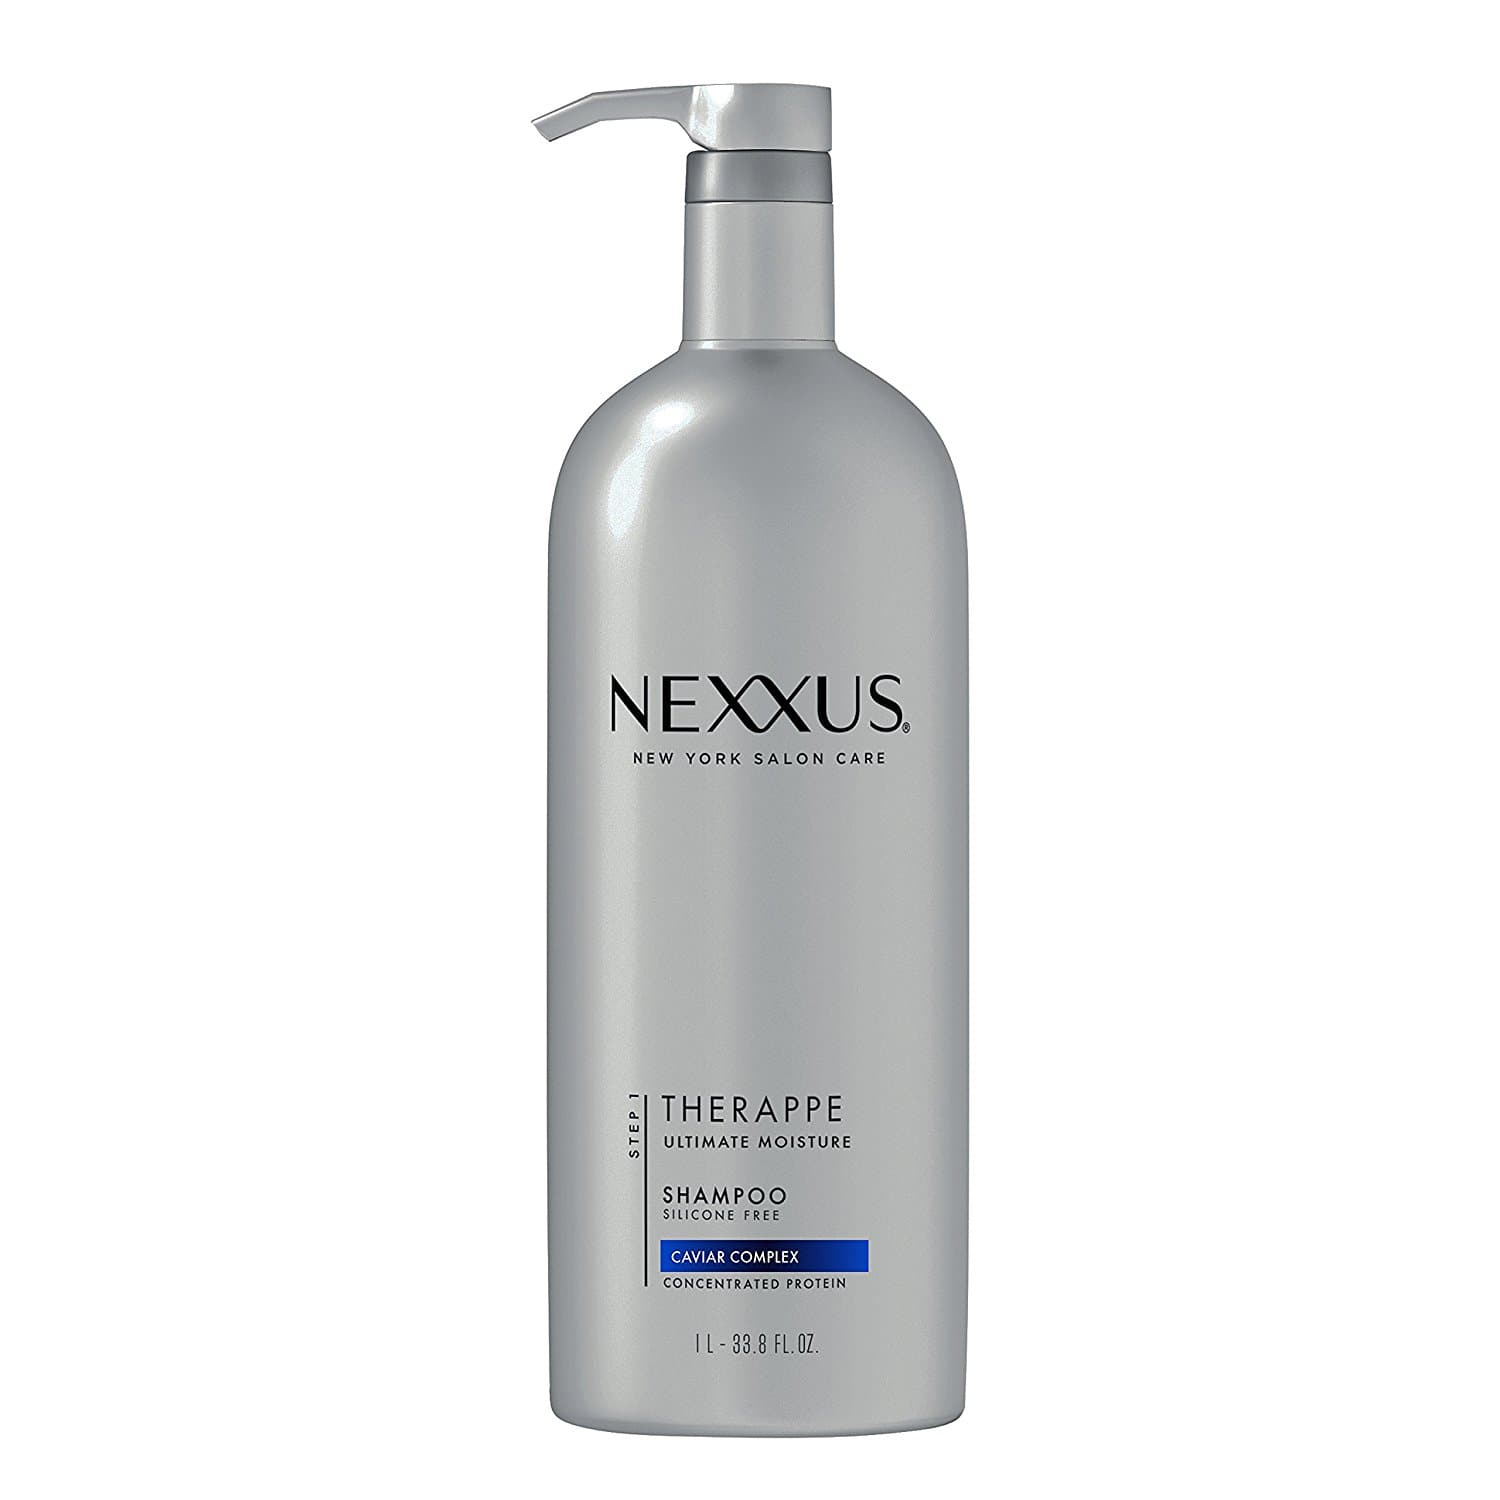 33.8 Ounce Bottle Nexxus Therappe Moisture Shampoo for Normal to Dry Hair - $8.39 AC & S&S ($7.19 AC & 5 S&S Orders) + Free Shipping - Amazon